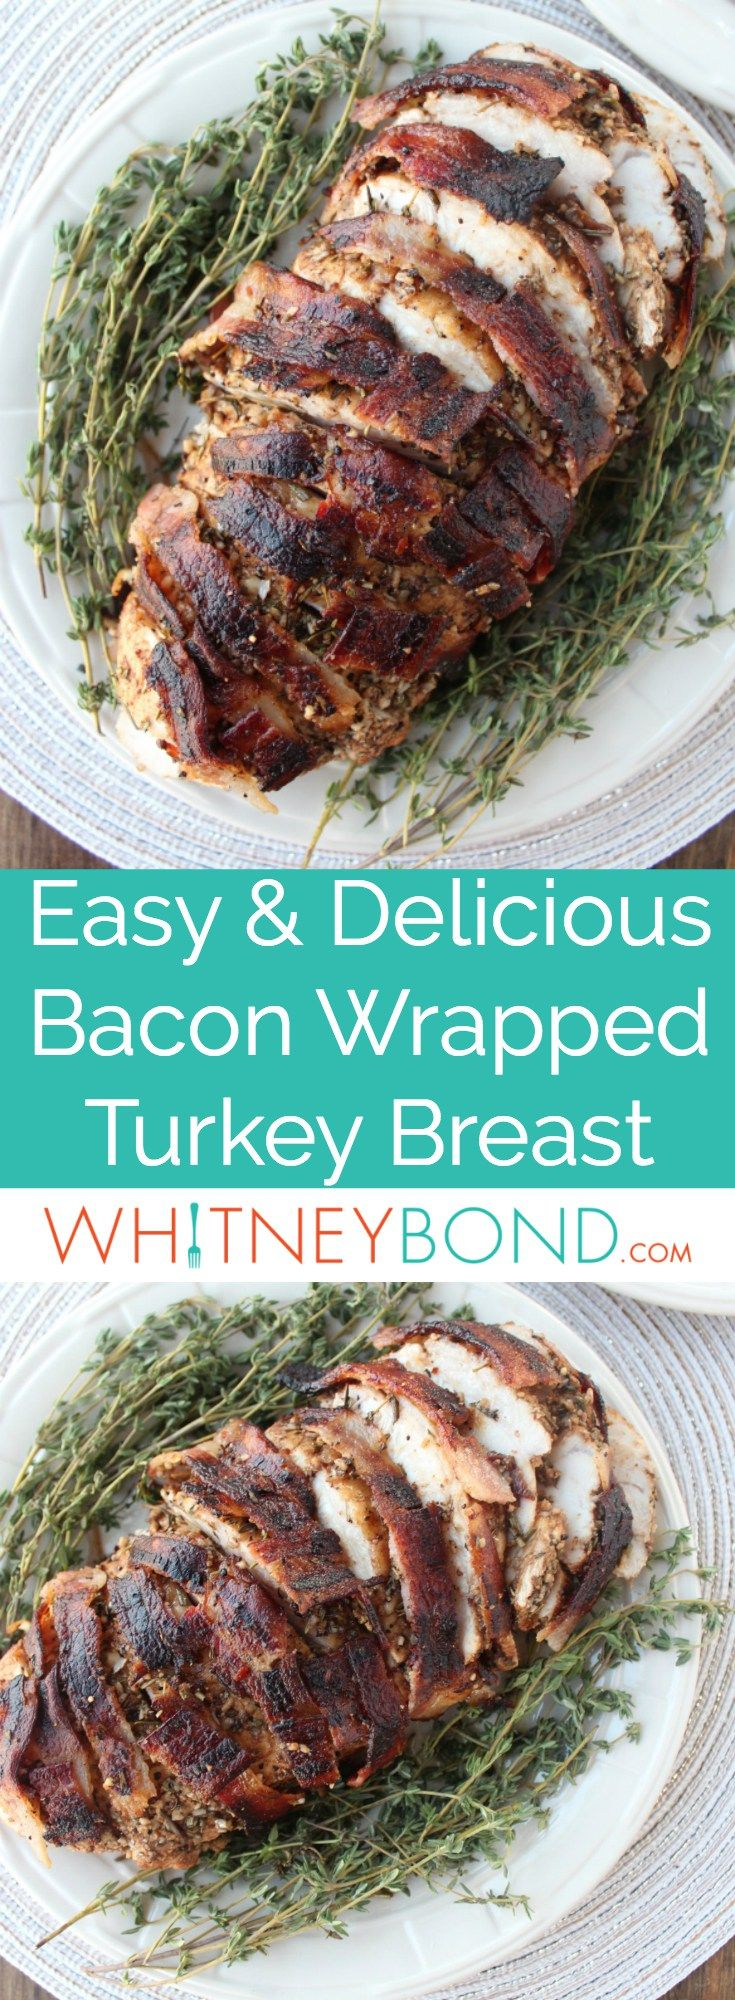 This bacon wrapped turkey breast is covered in a balsamic garlic herb rub then wrapped in a bacon weave for a flavorful, juicy turkey recipe. #Turkey #Thanksgiving #Bacon #GlutenFree